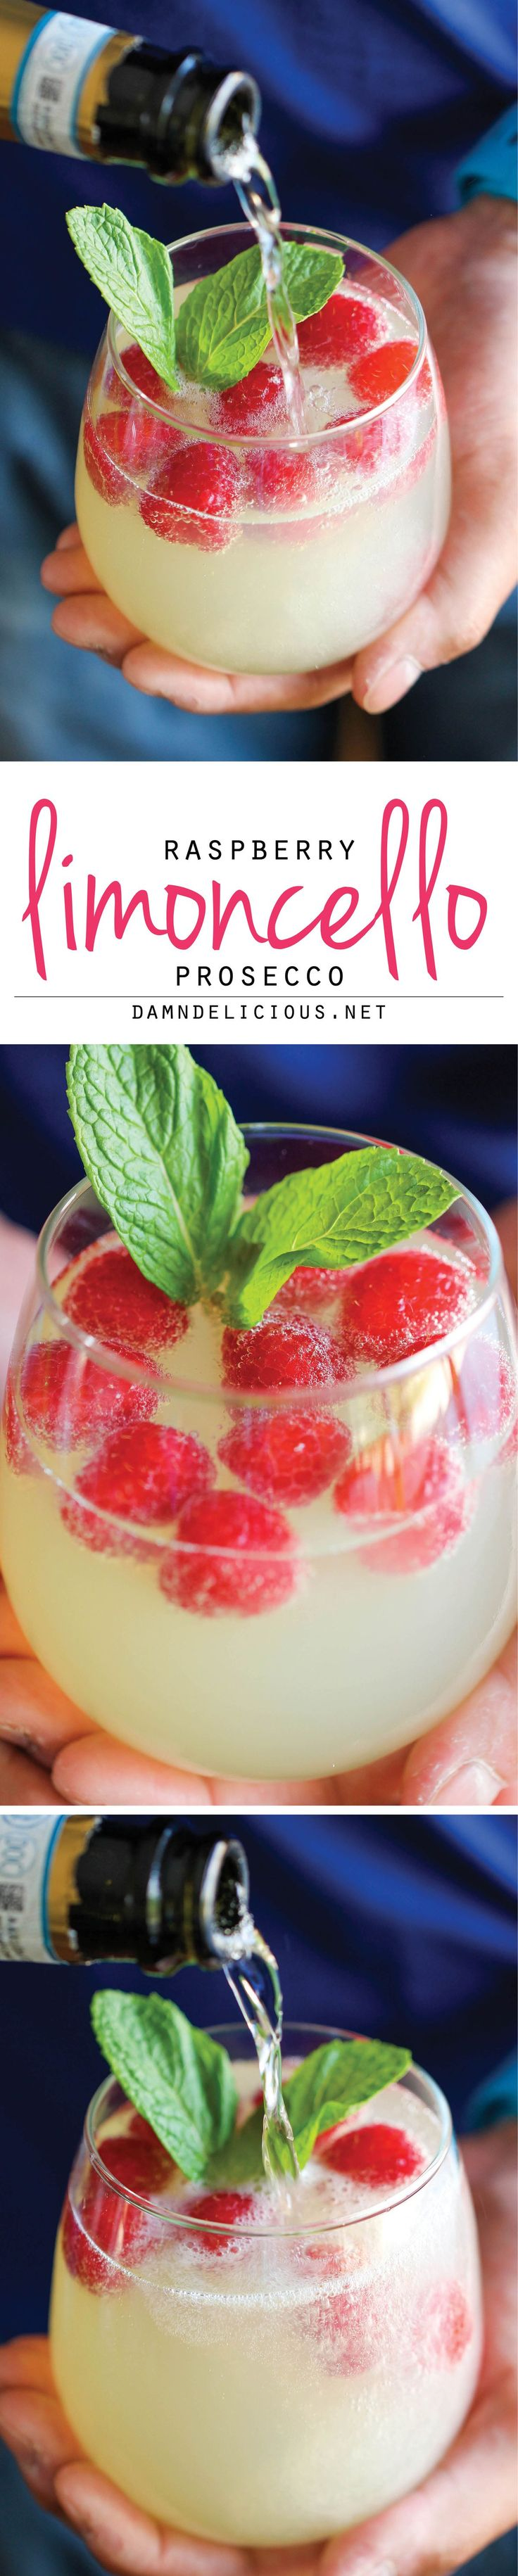 Raspberry Limoncello Prosecco @lbelden13 OMFG we need this nowww